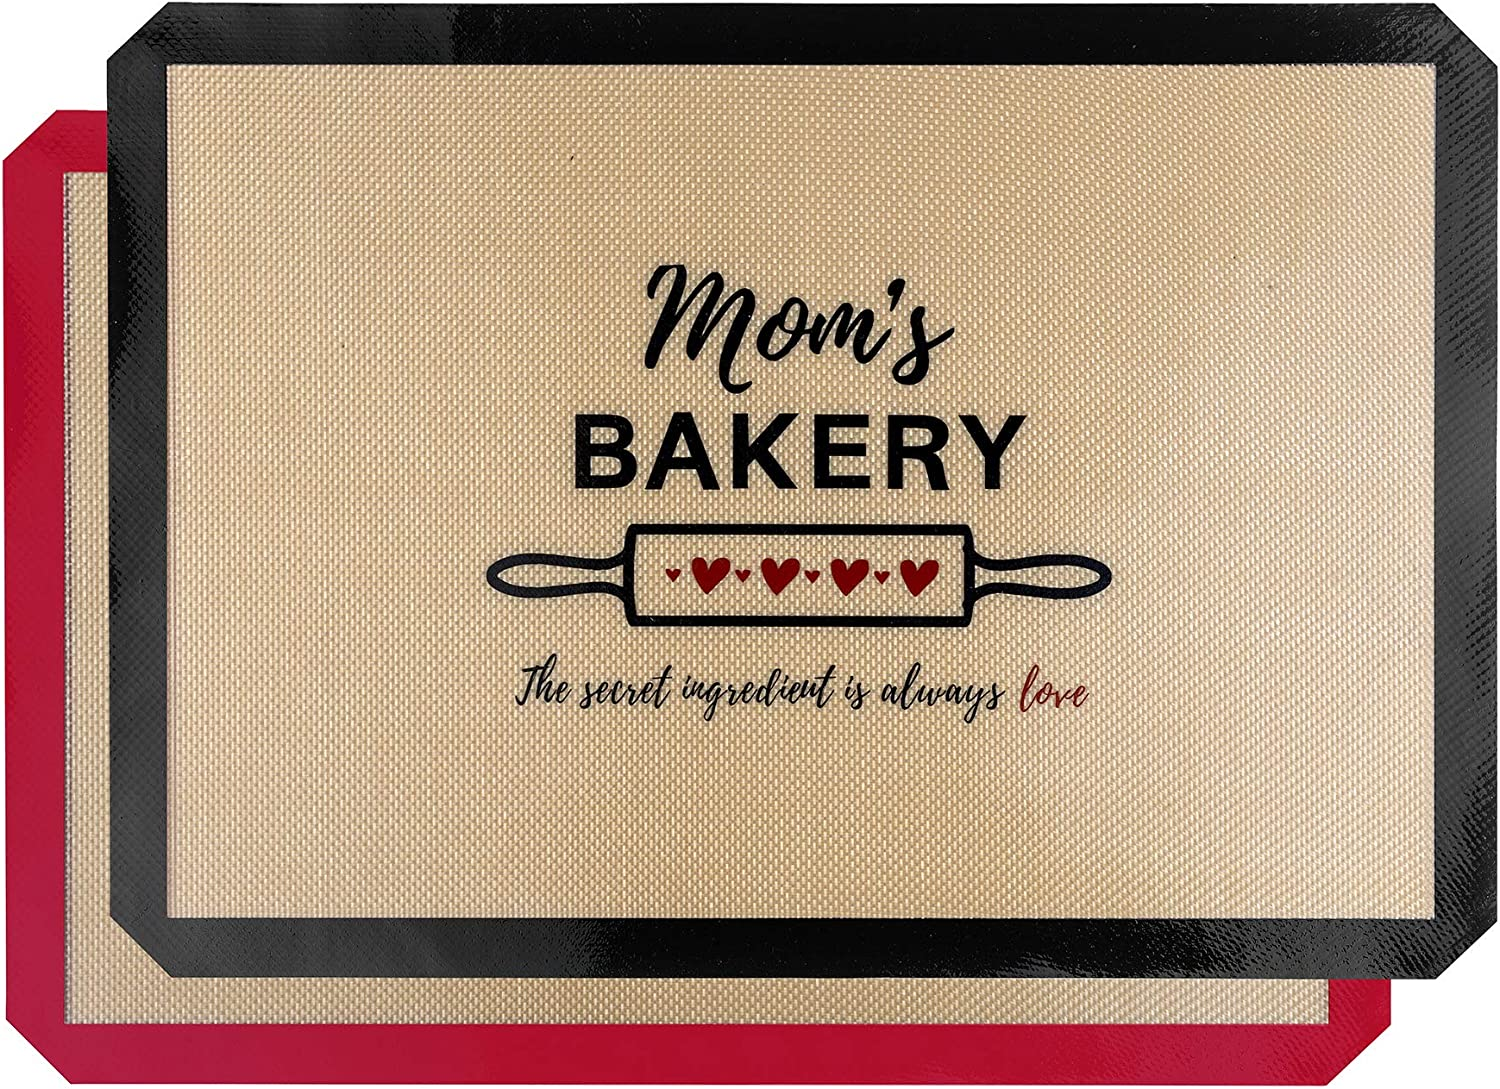 """Bright Home (2 Pack) Silicone Baking Mat Sheet Set - Reusable Silicone Baking Mats Non-Stick - Half Sheet Mat for Oven (Size 11.6"""" x 16.5"""") - BPA free - Mom's Bakery Design - Black/Red"""